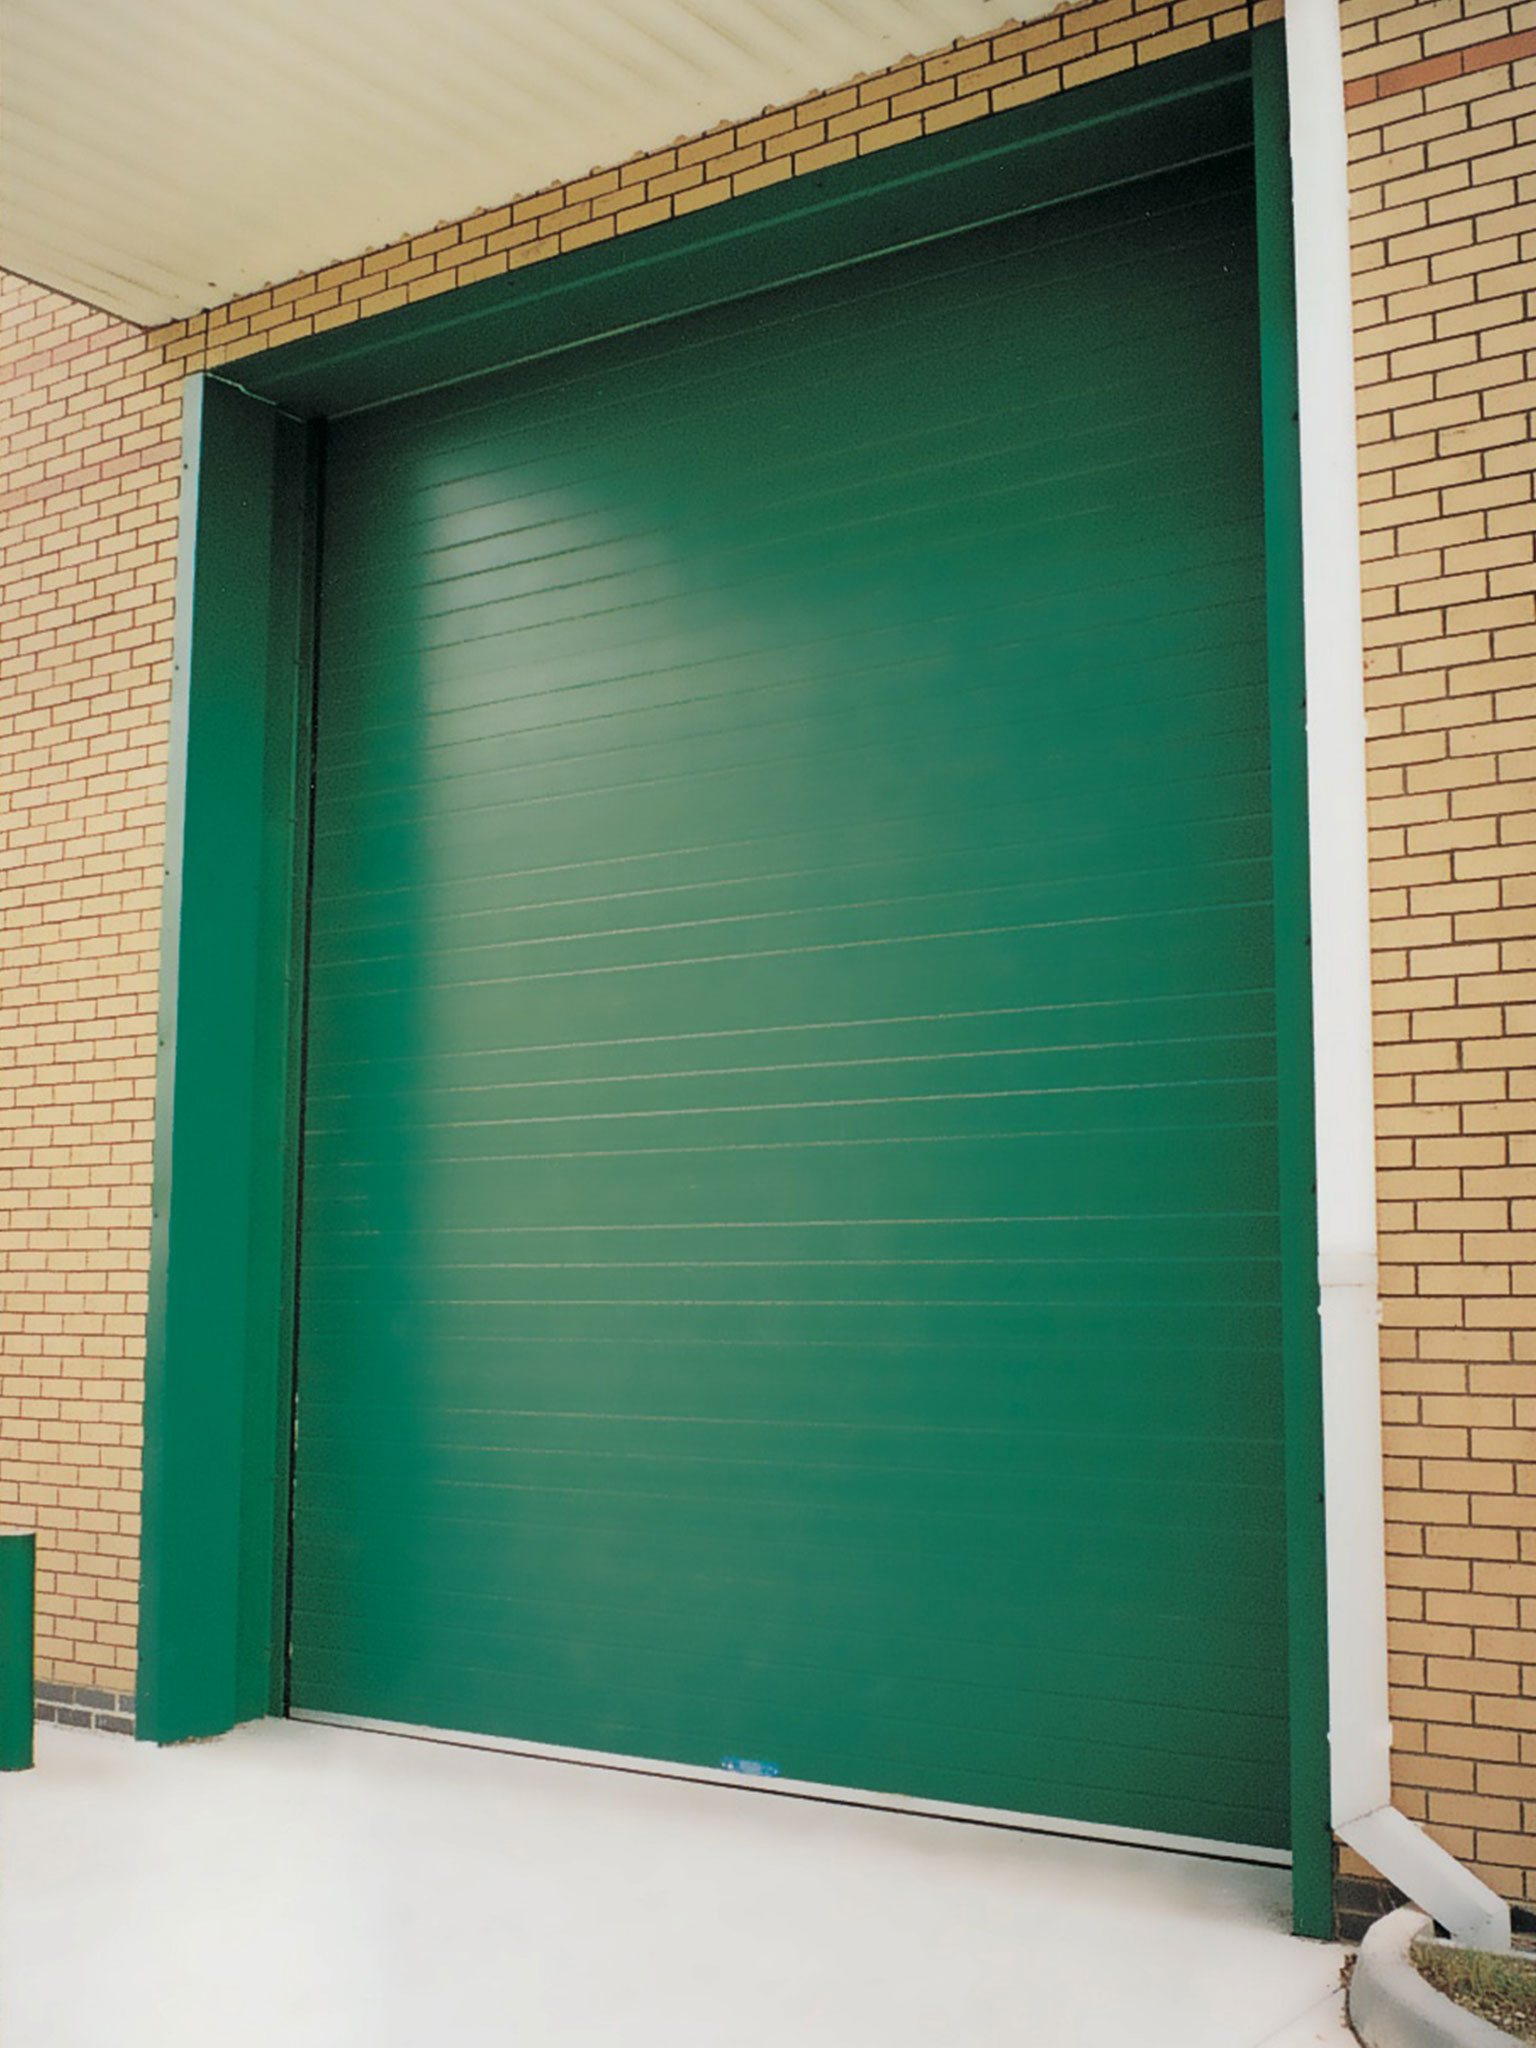 Sectional Overhead Door green